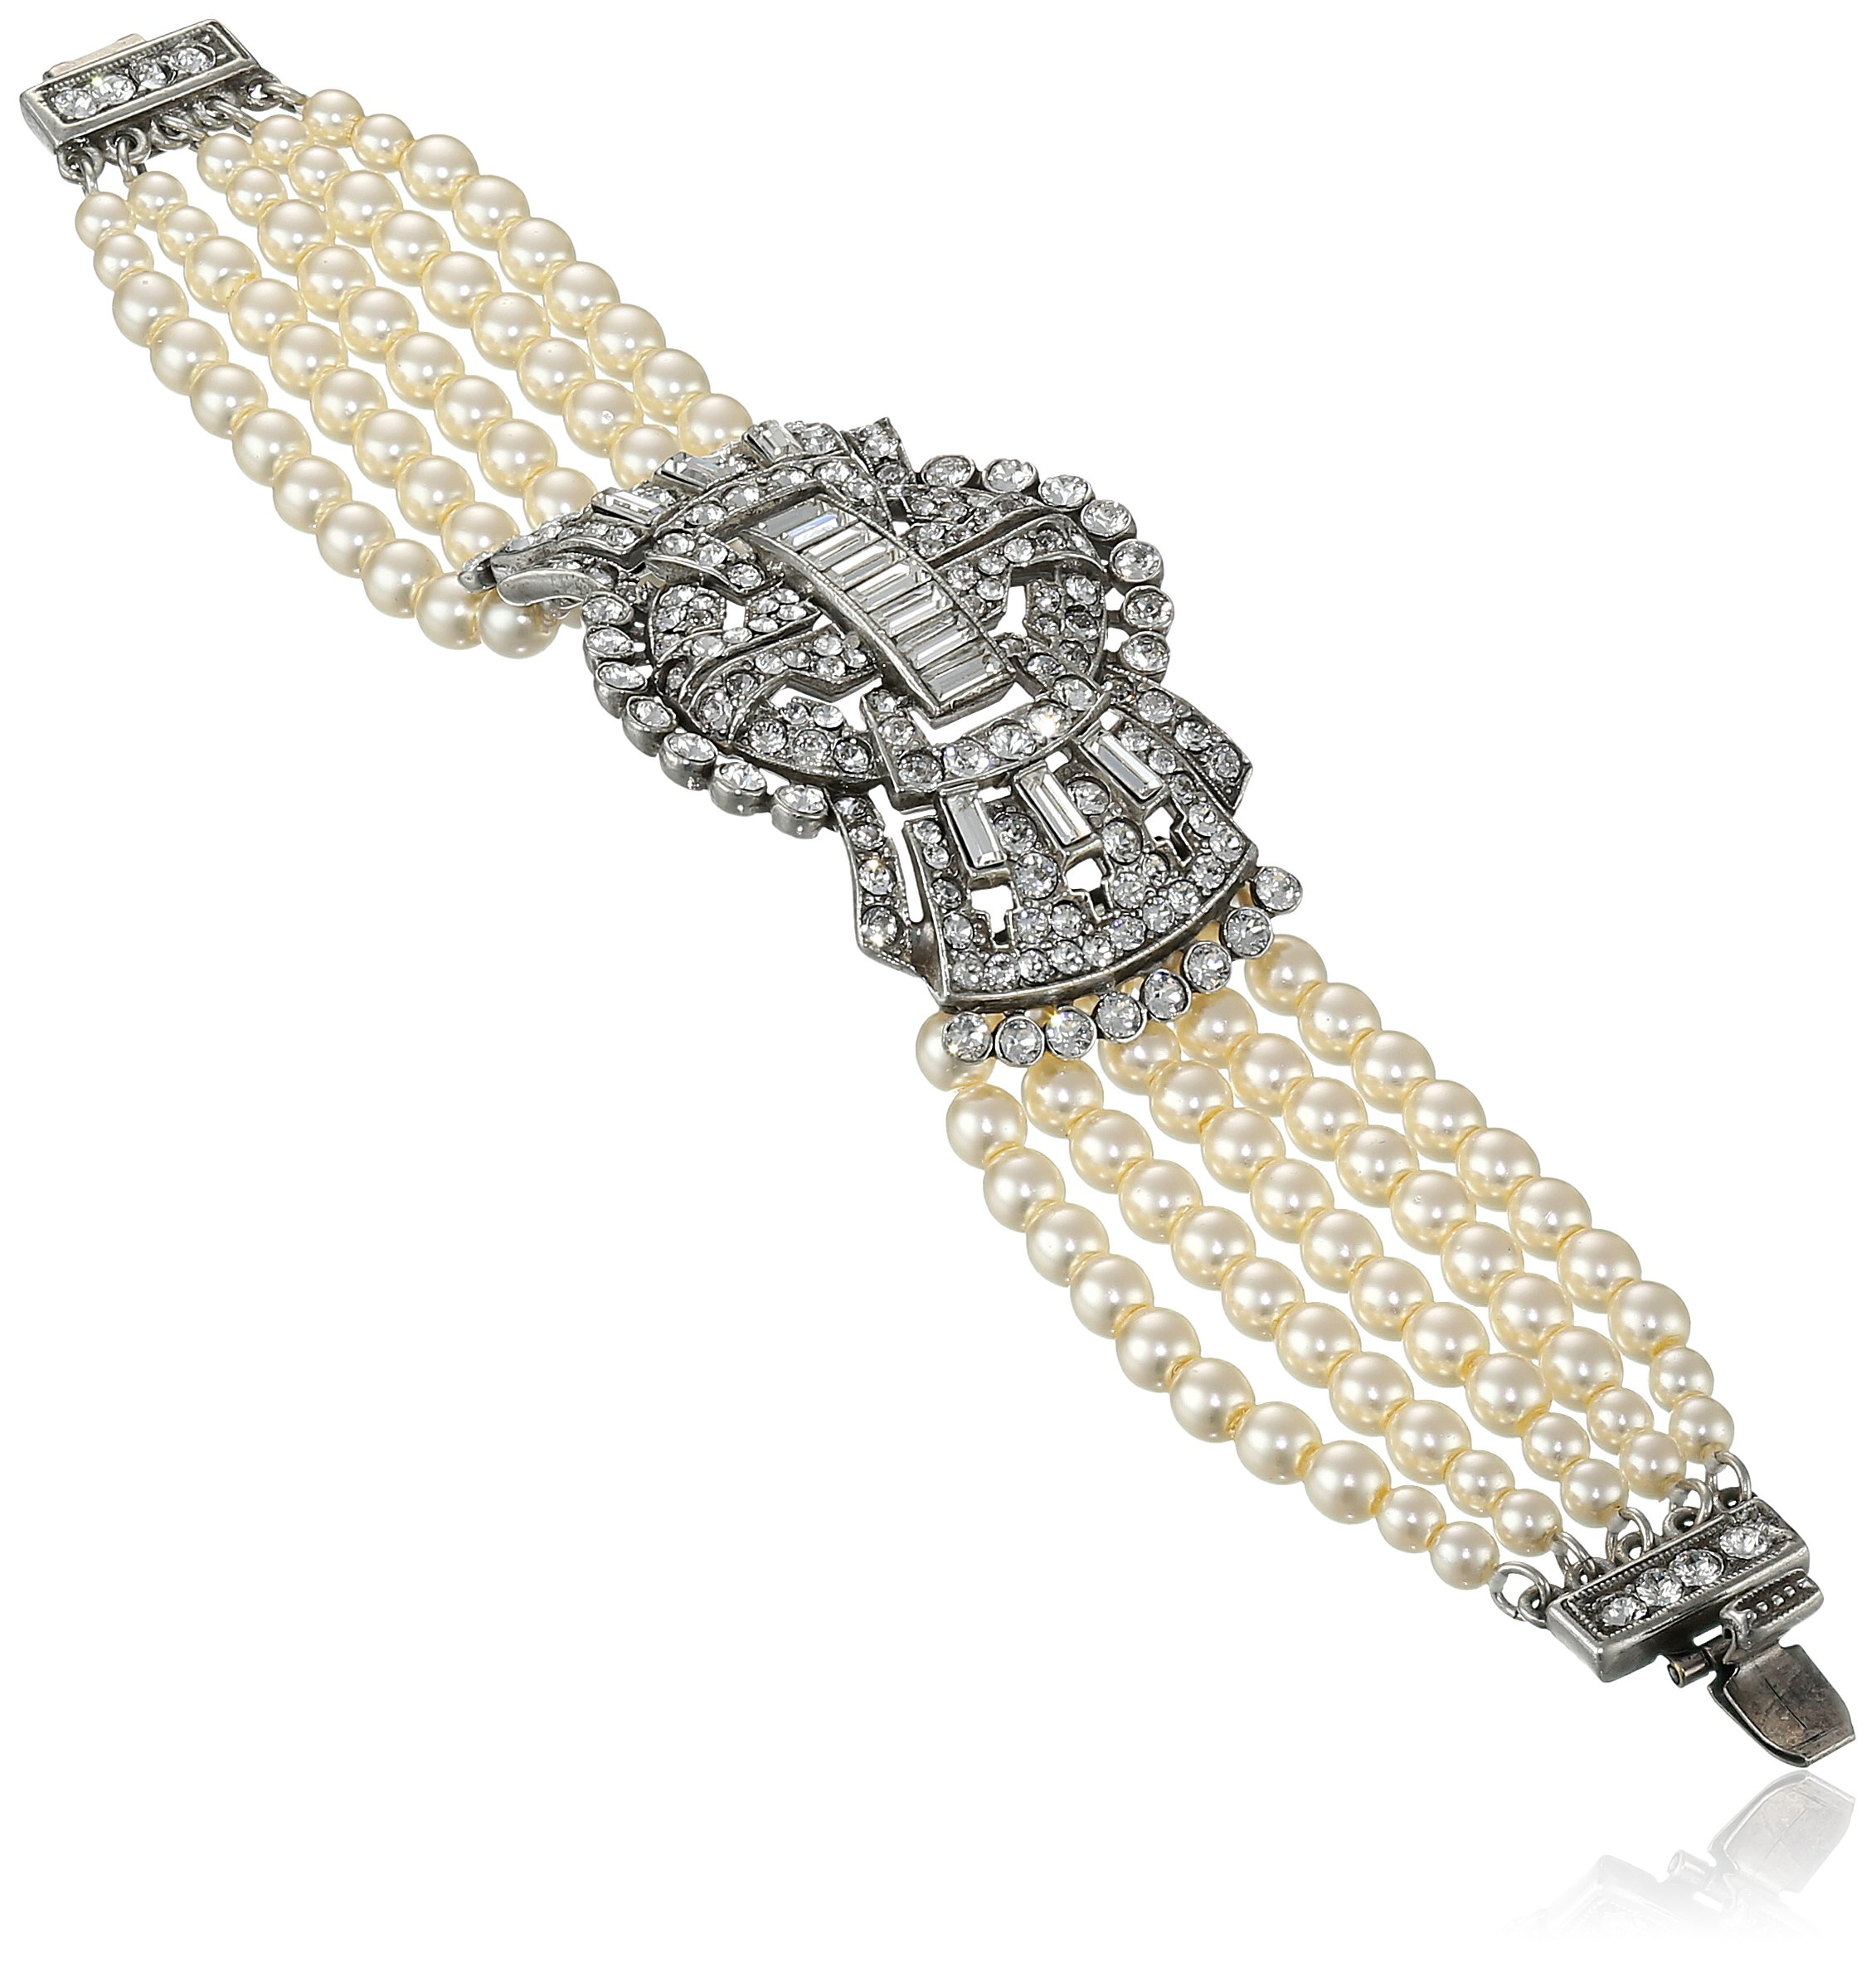 Ben-Amun Jewelry Swarovski Crystal and Glass Pearls Deco Bracelet for Bridal Wedding Anniversary by Ben-Amun Jewelry